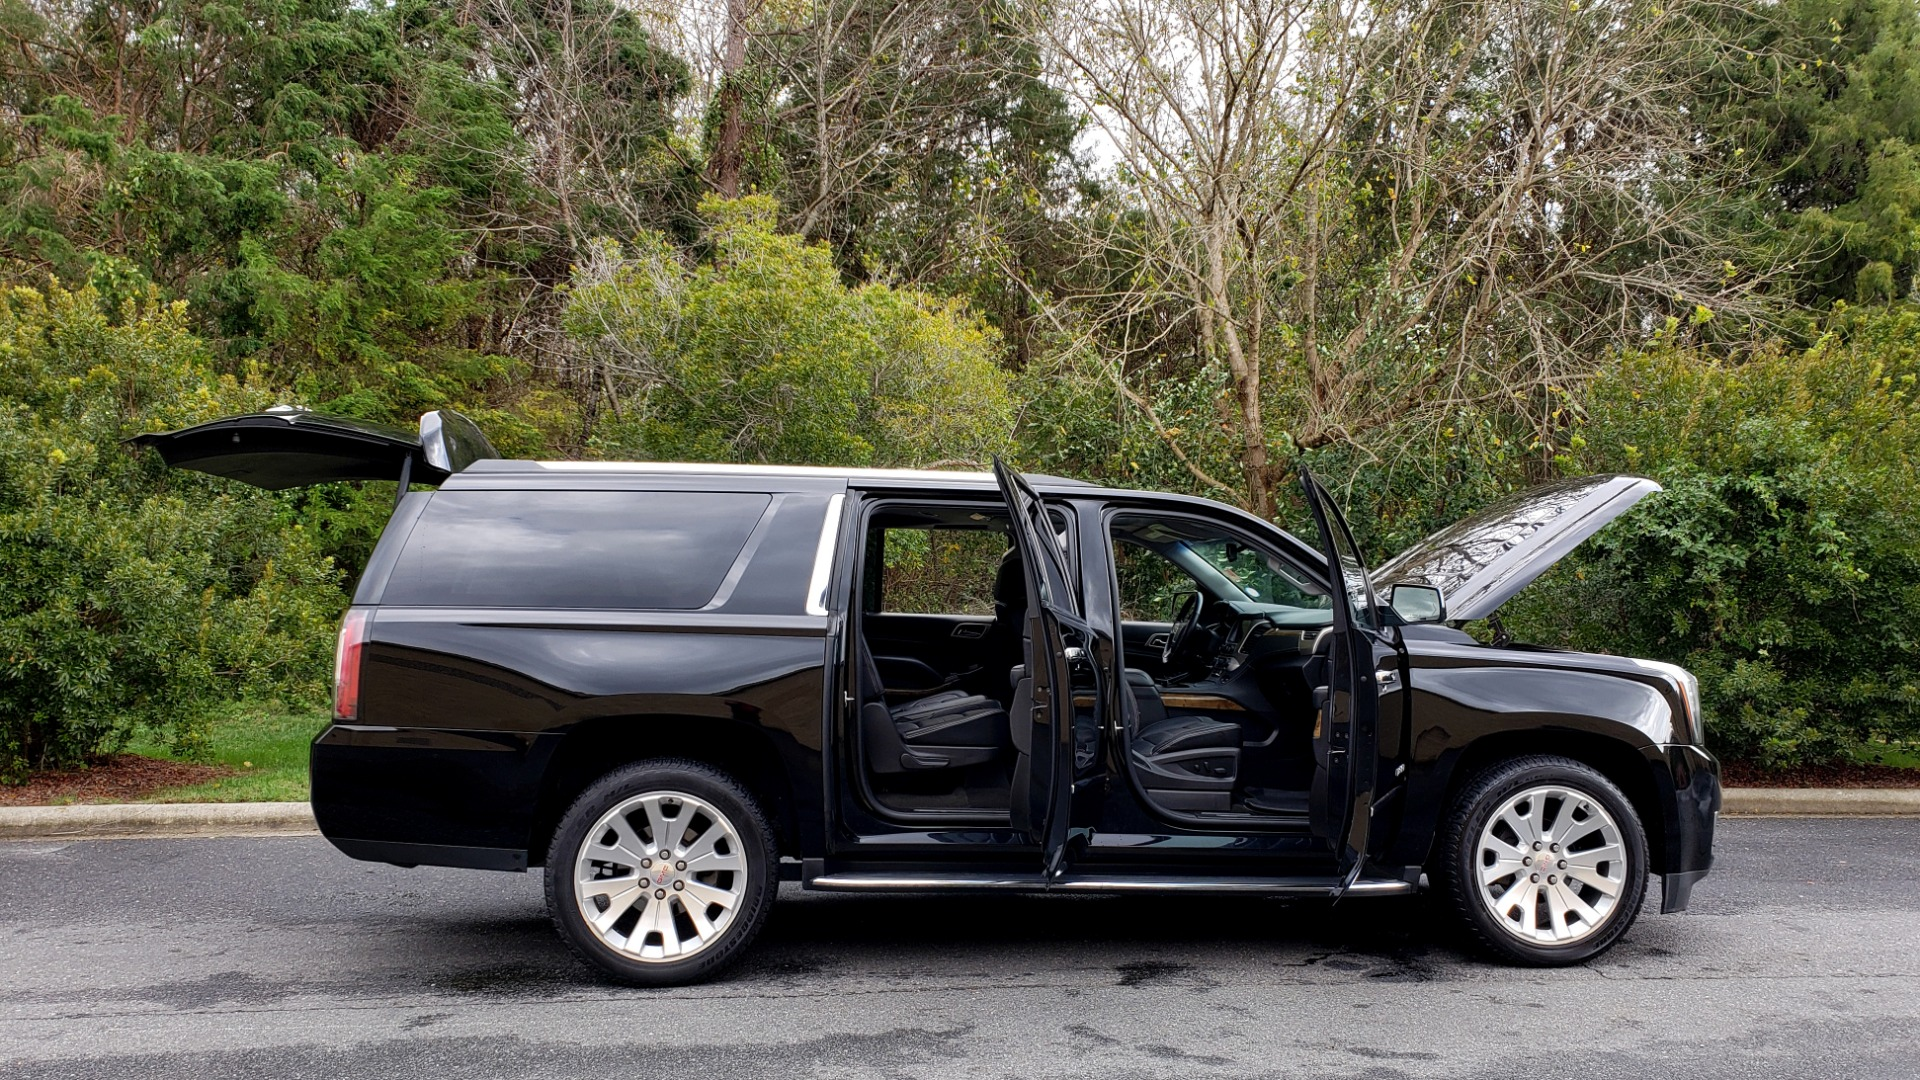 Used 2017 GMC YUKON XL DENALI 4WD / NAV / SUNROOF / ENT / 3-ROWS / BOSE / REARVIEW for sale Sold at Formula Imports in Charlotte NC 28227 10